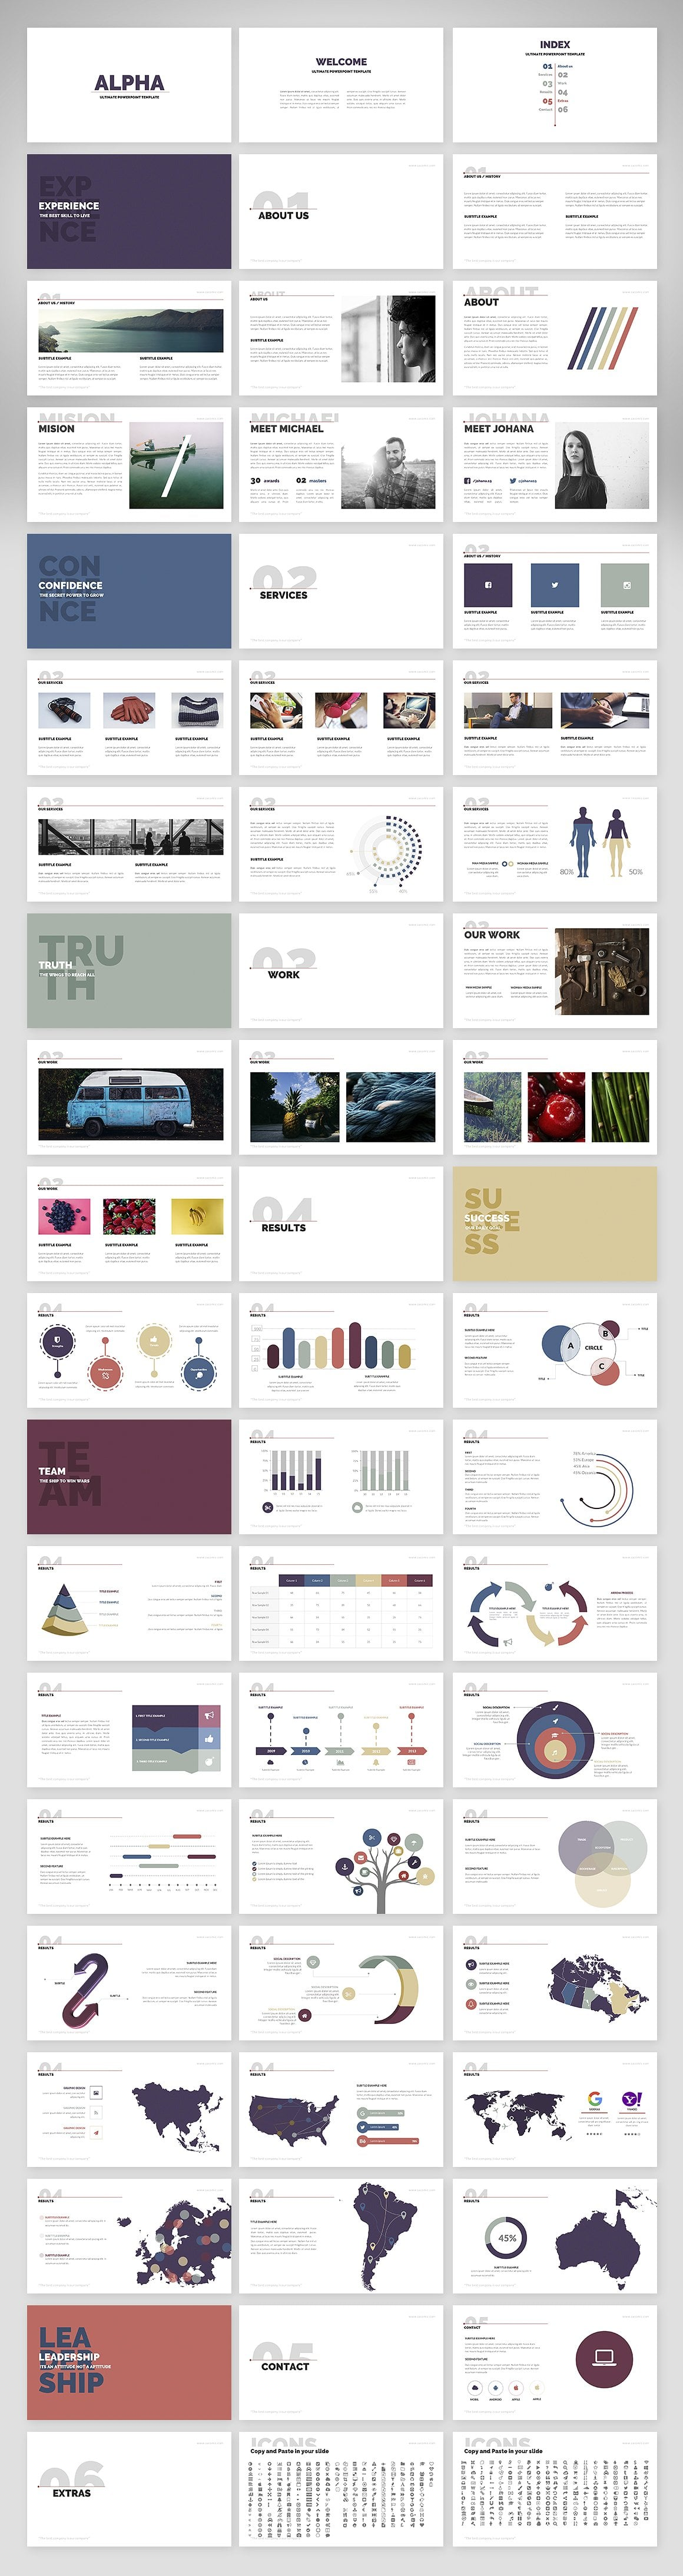 20 Powerpoint Templates with 81% OFF - Alpha 03